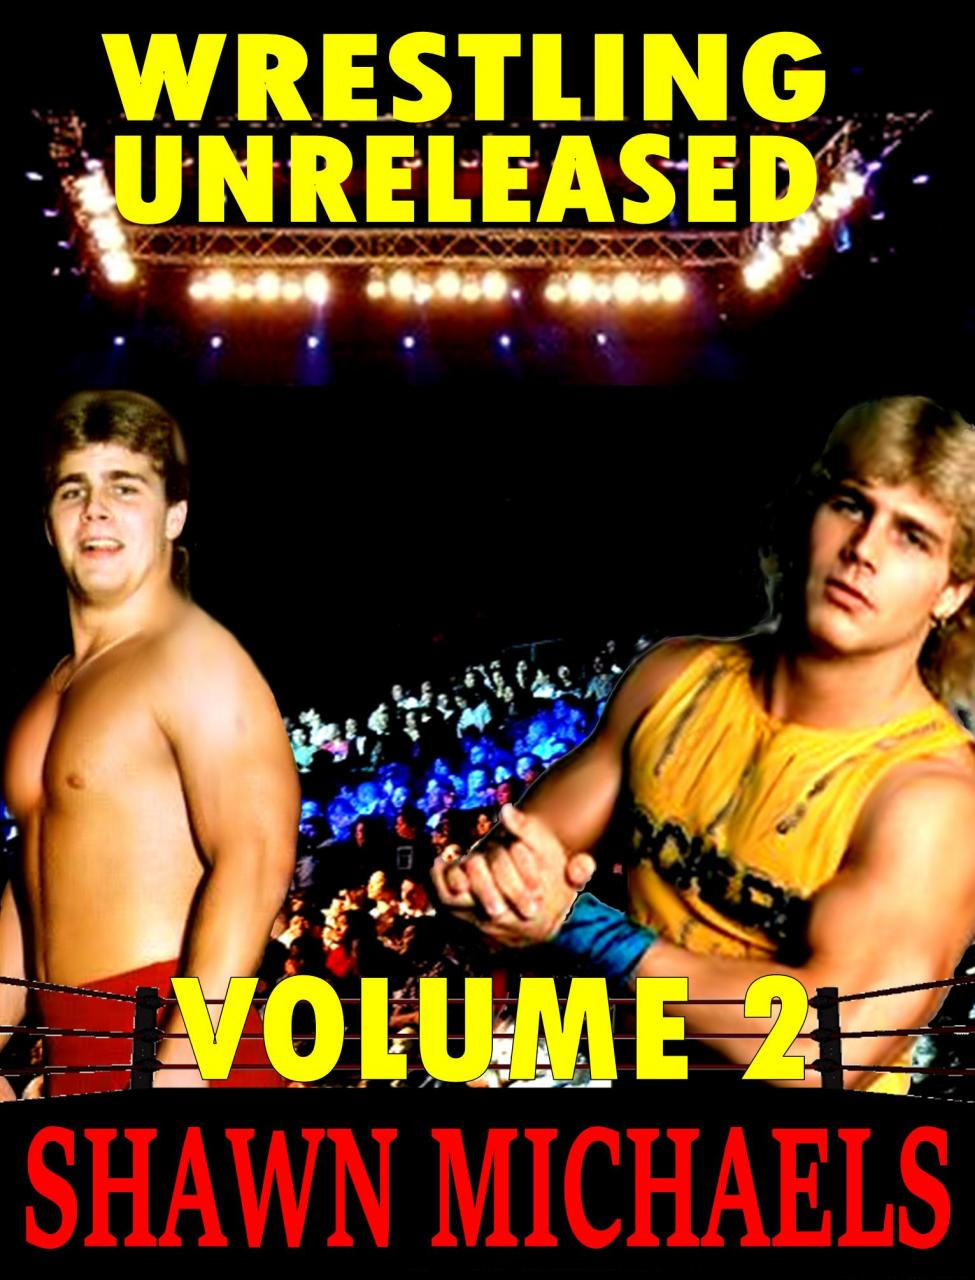 Wrestling Unreleased Vol 2 Shawn Michaels